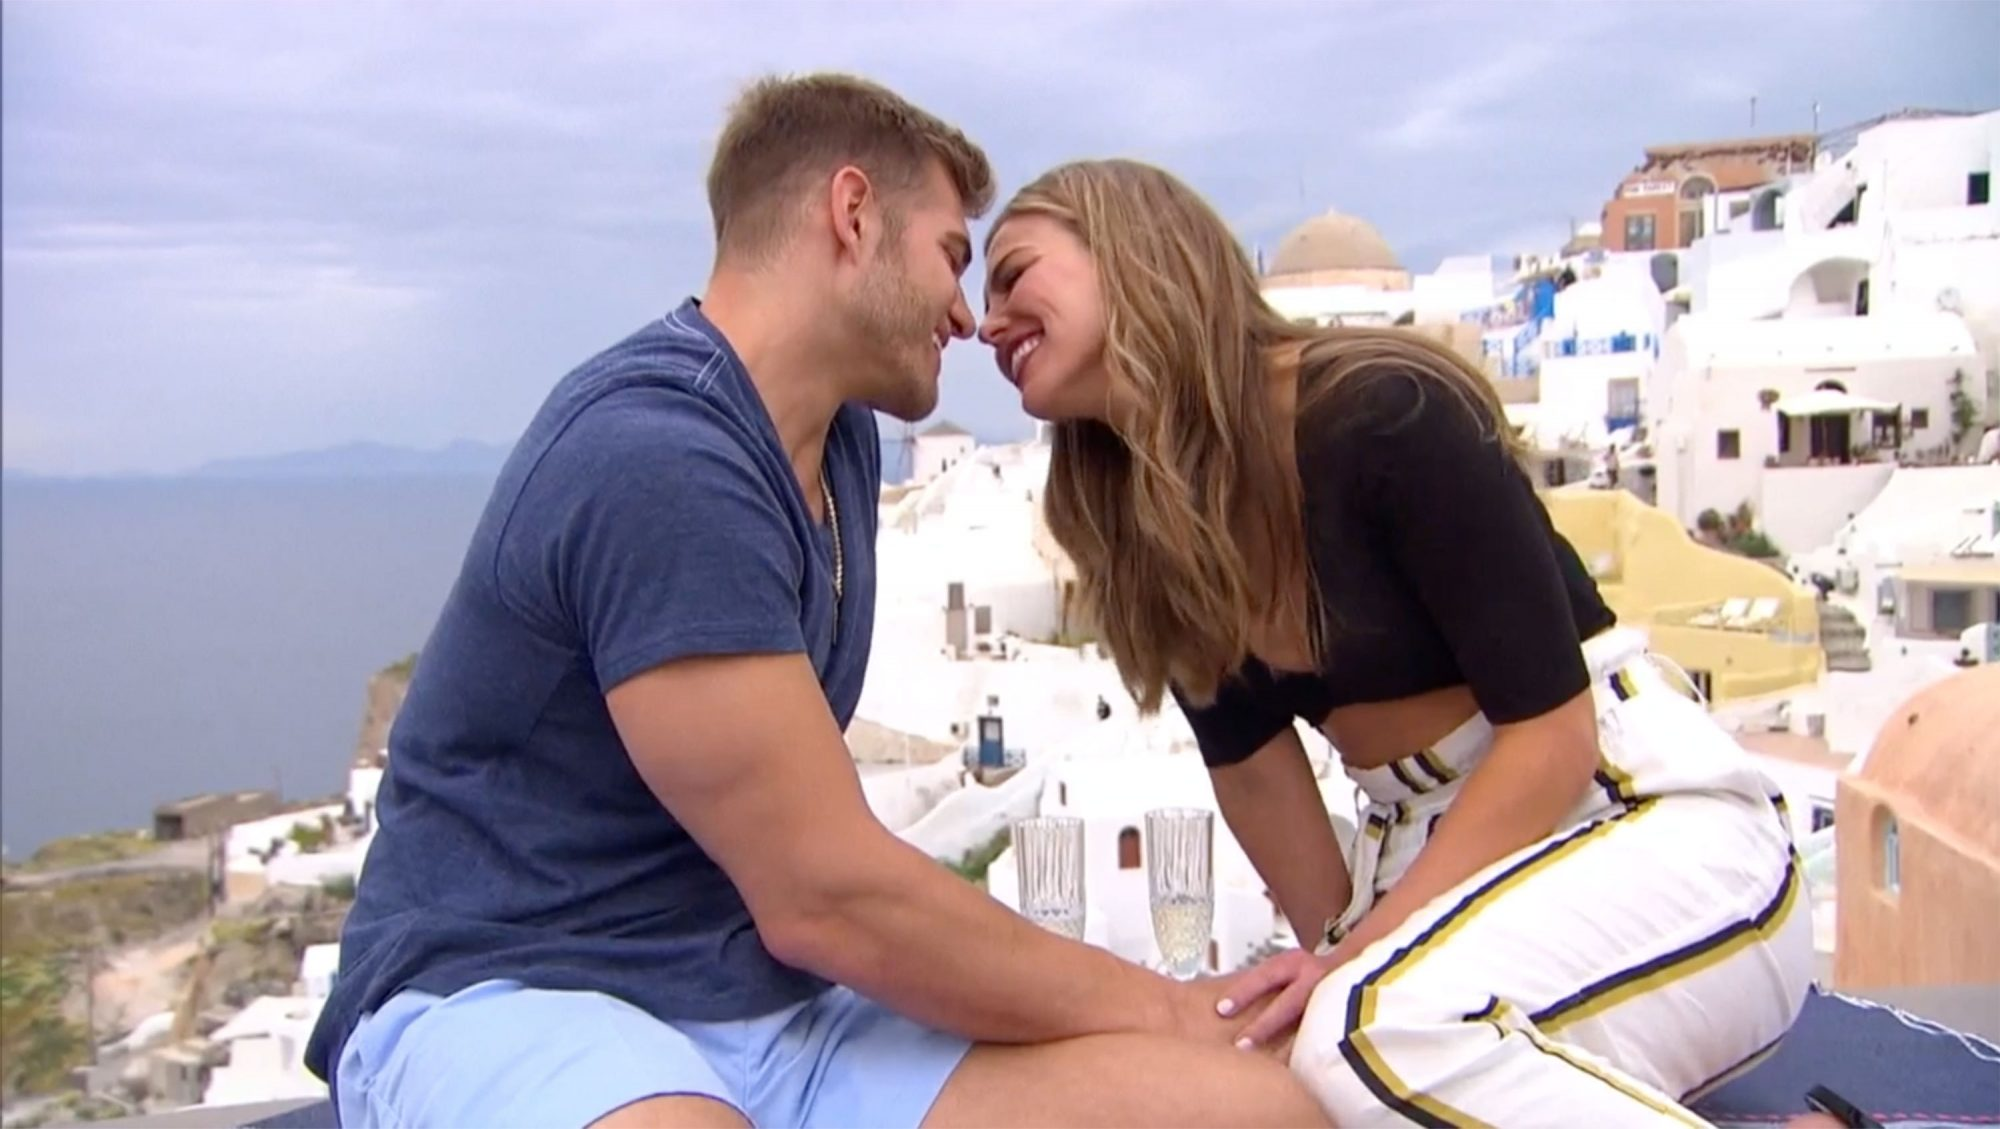 WHAT TO WATCH 07/15/19 The Bachelorette